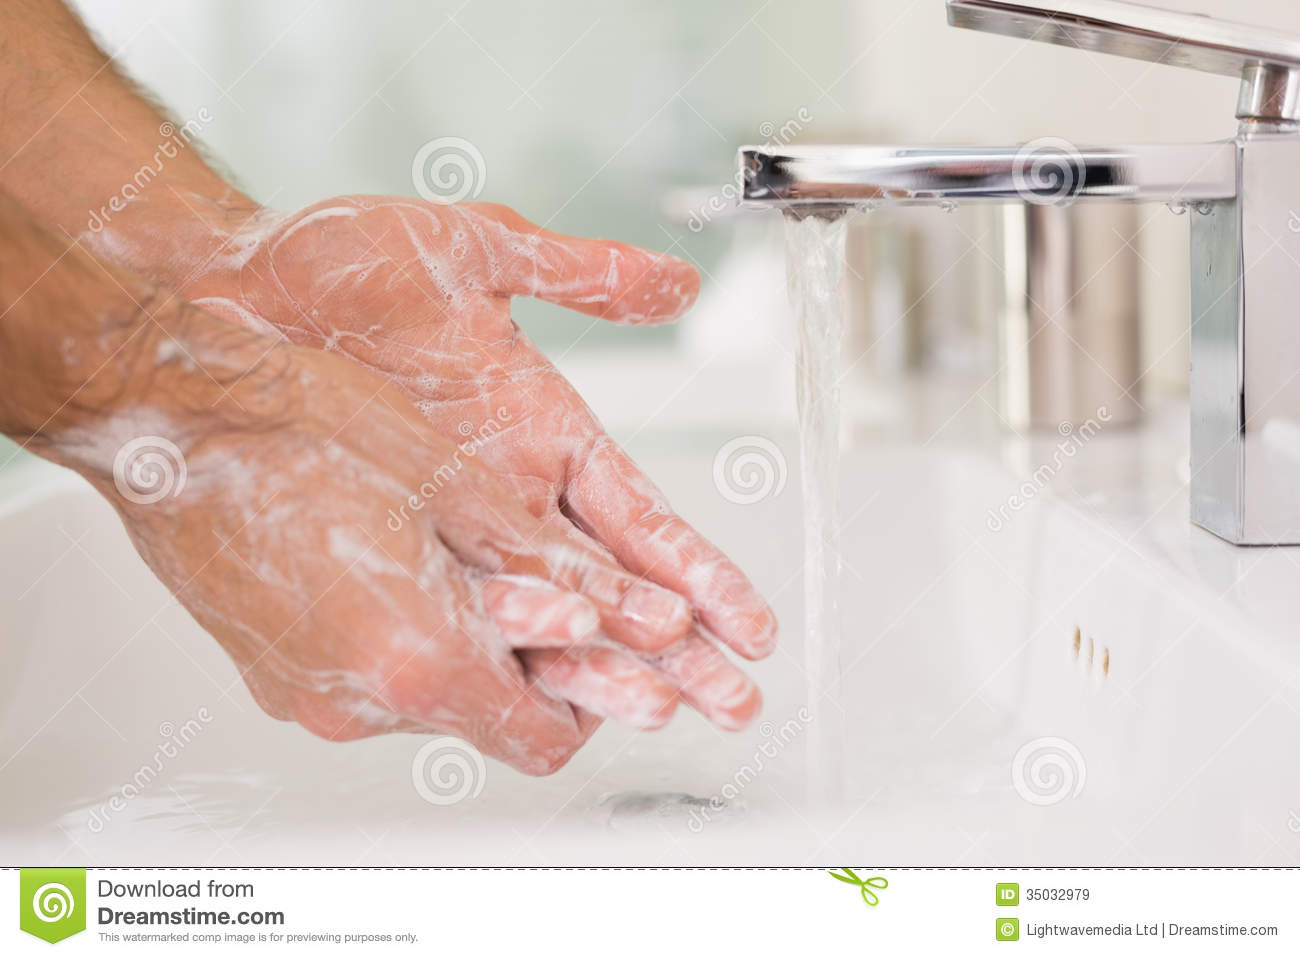 Washing Hands With Soap Under Running Water Royalty Free